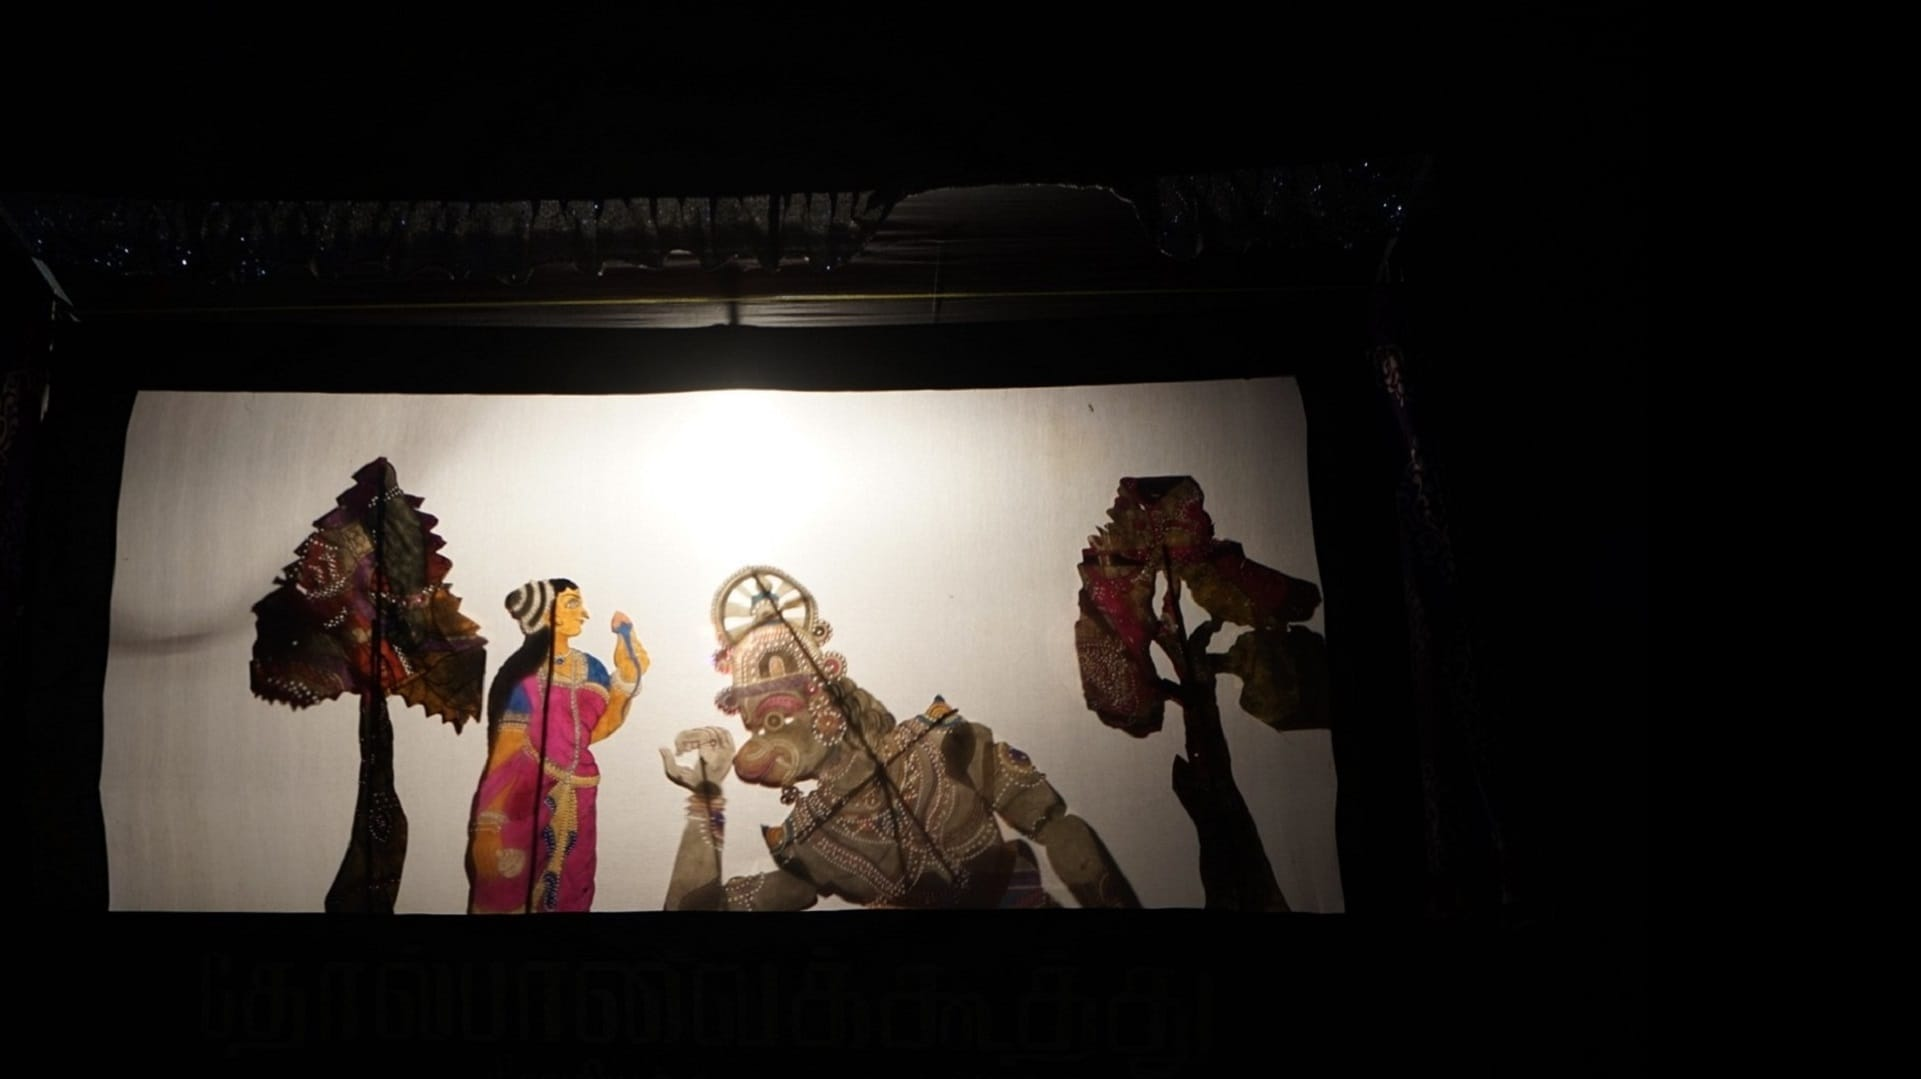 In Tamil Nadu, a 400-year-old tradition of shadow puppetry struggles to survive